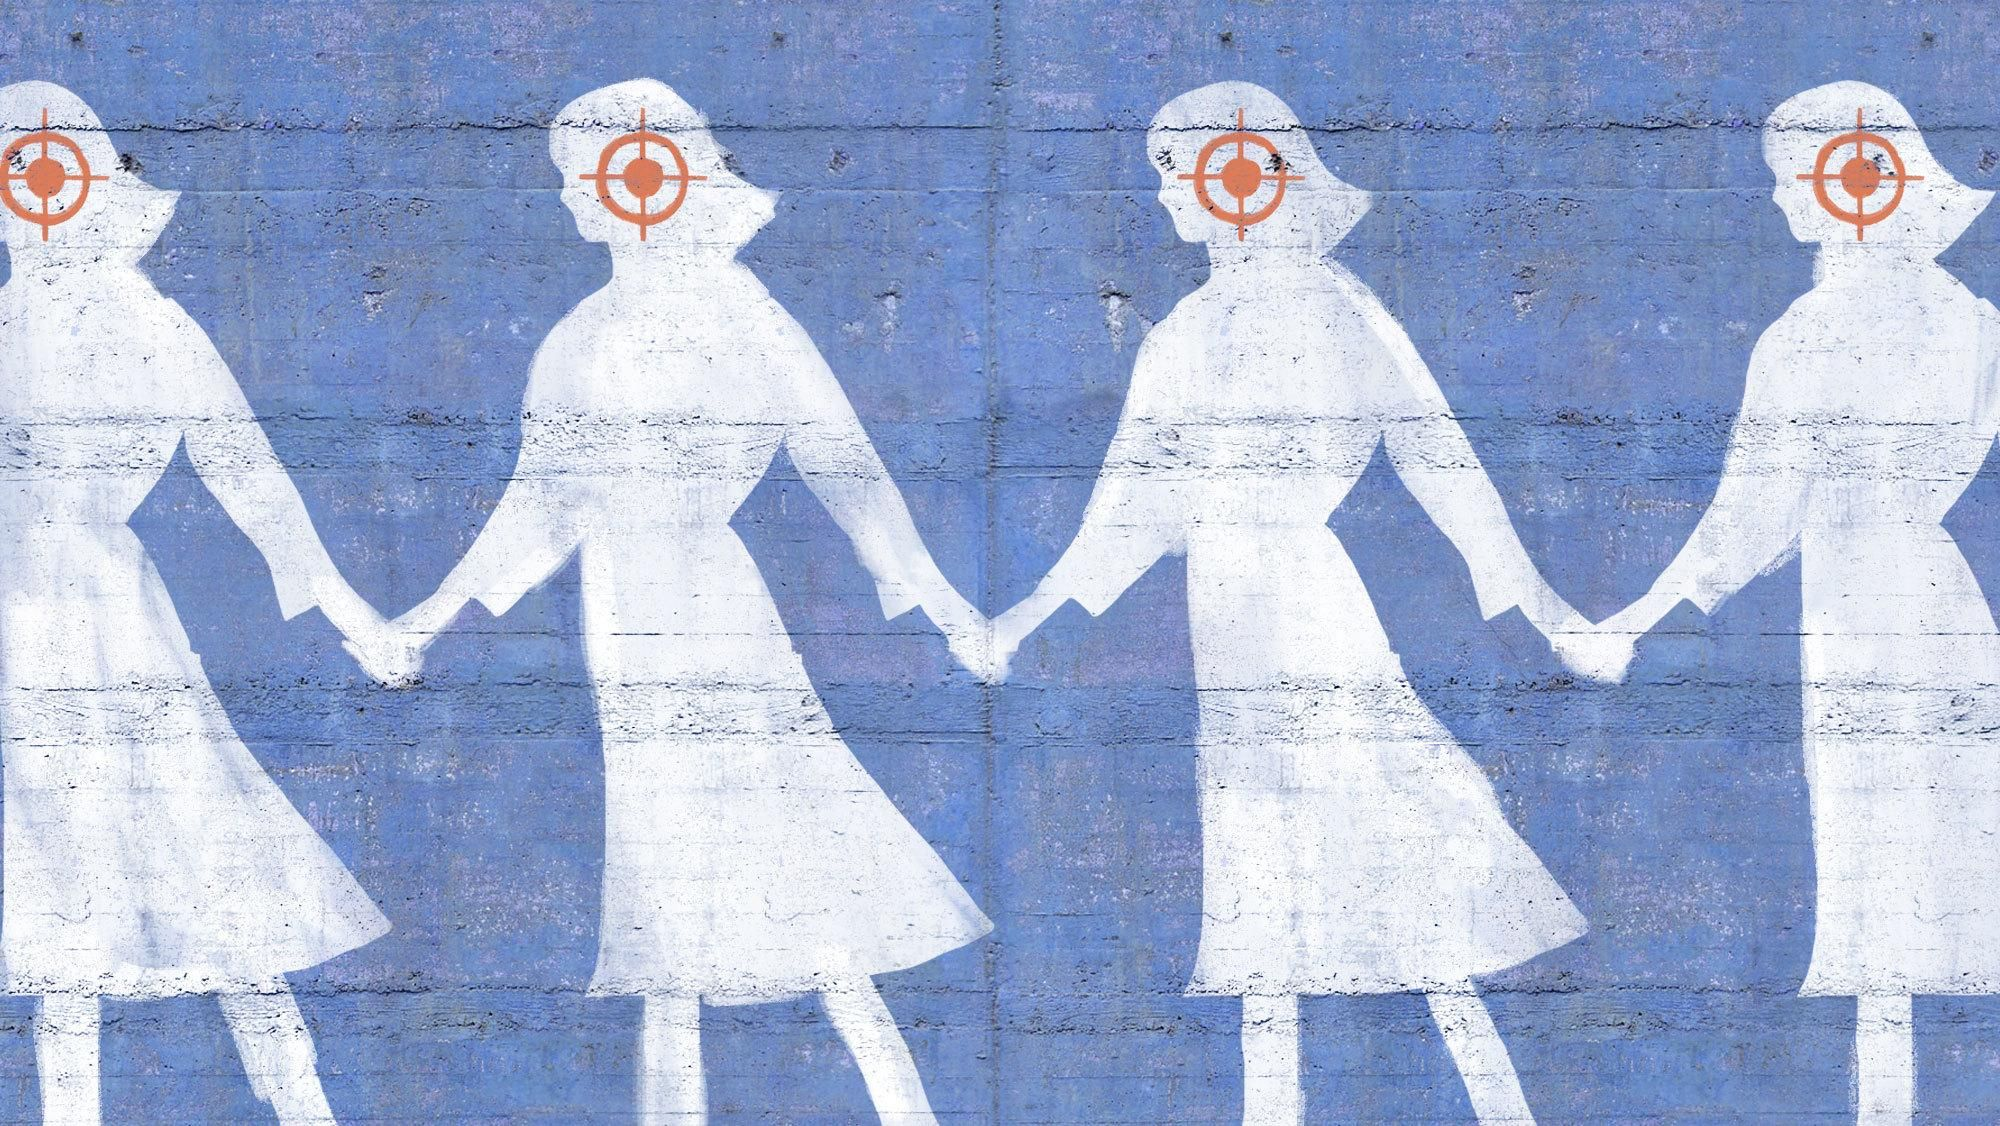 The Importance of Recognizing the Murder of Women as a Hate Crime